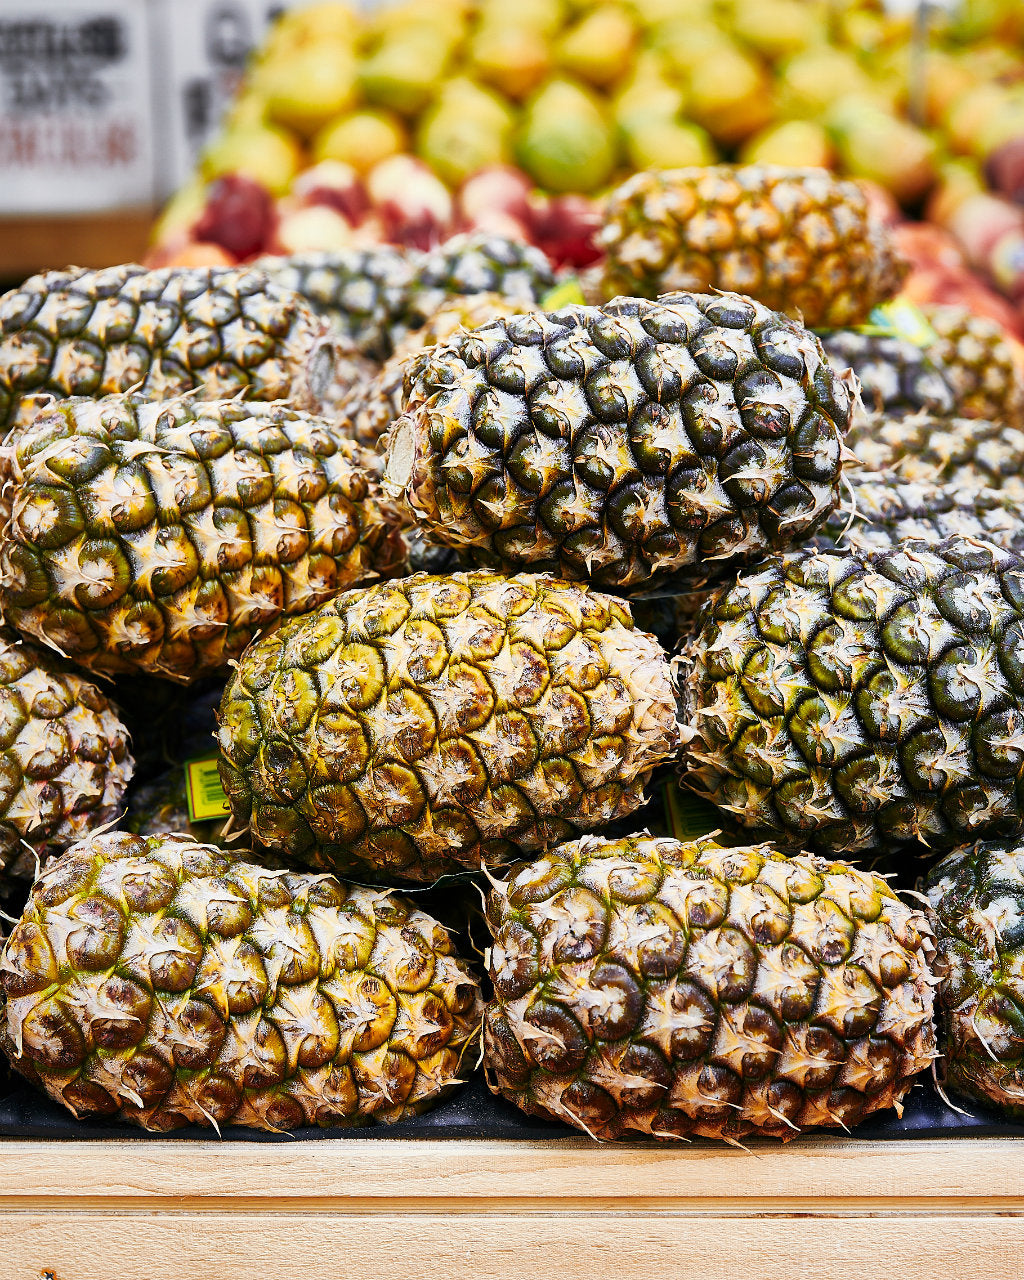 pick of the week pineapples from harris farm markets